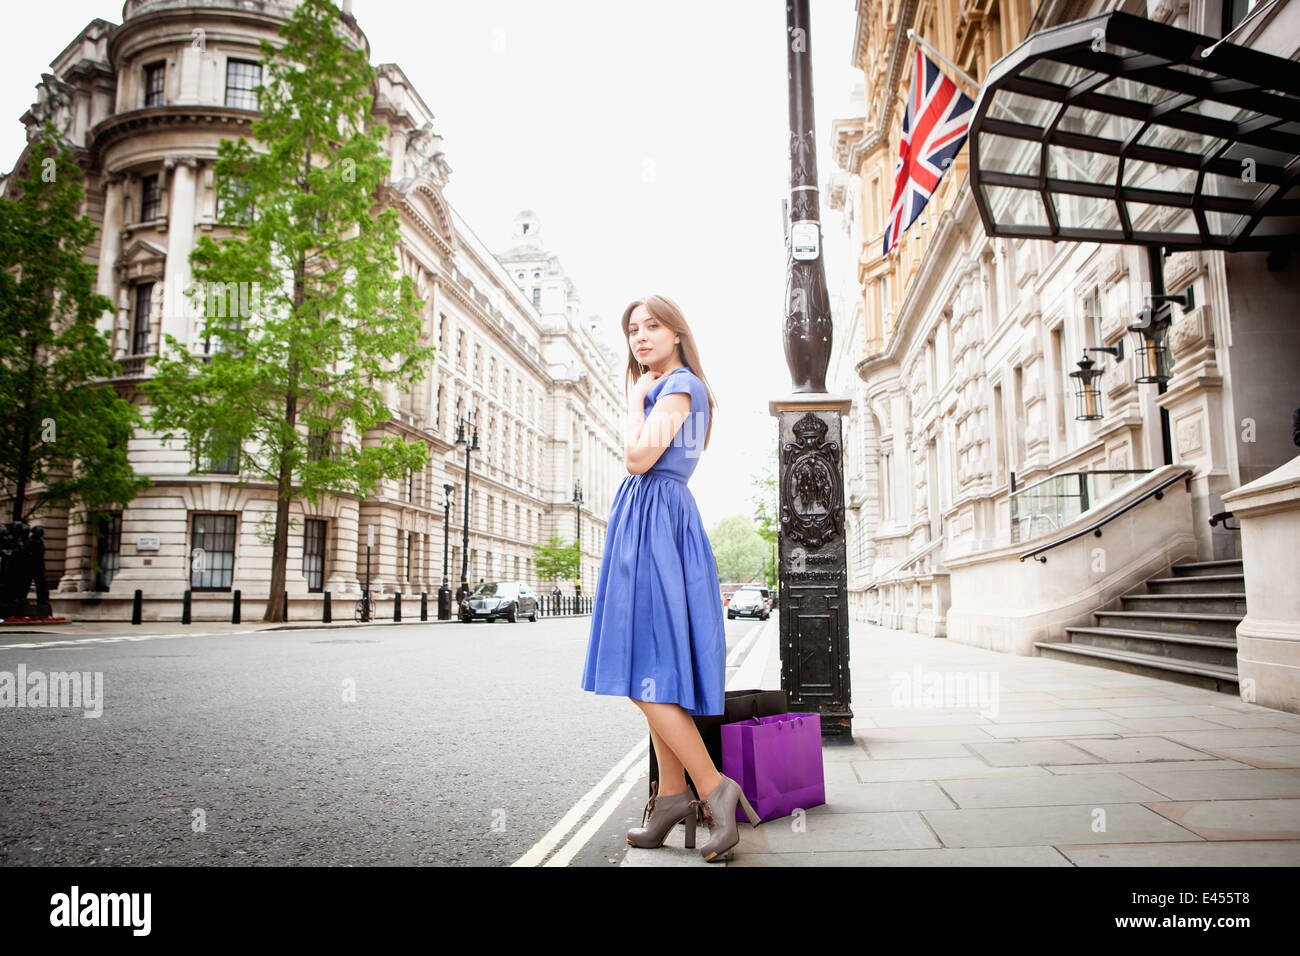 Young woman standing in London street, with shopping bags - Stock Image